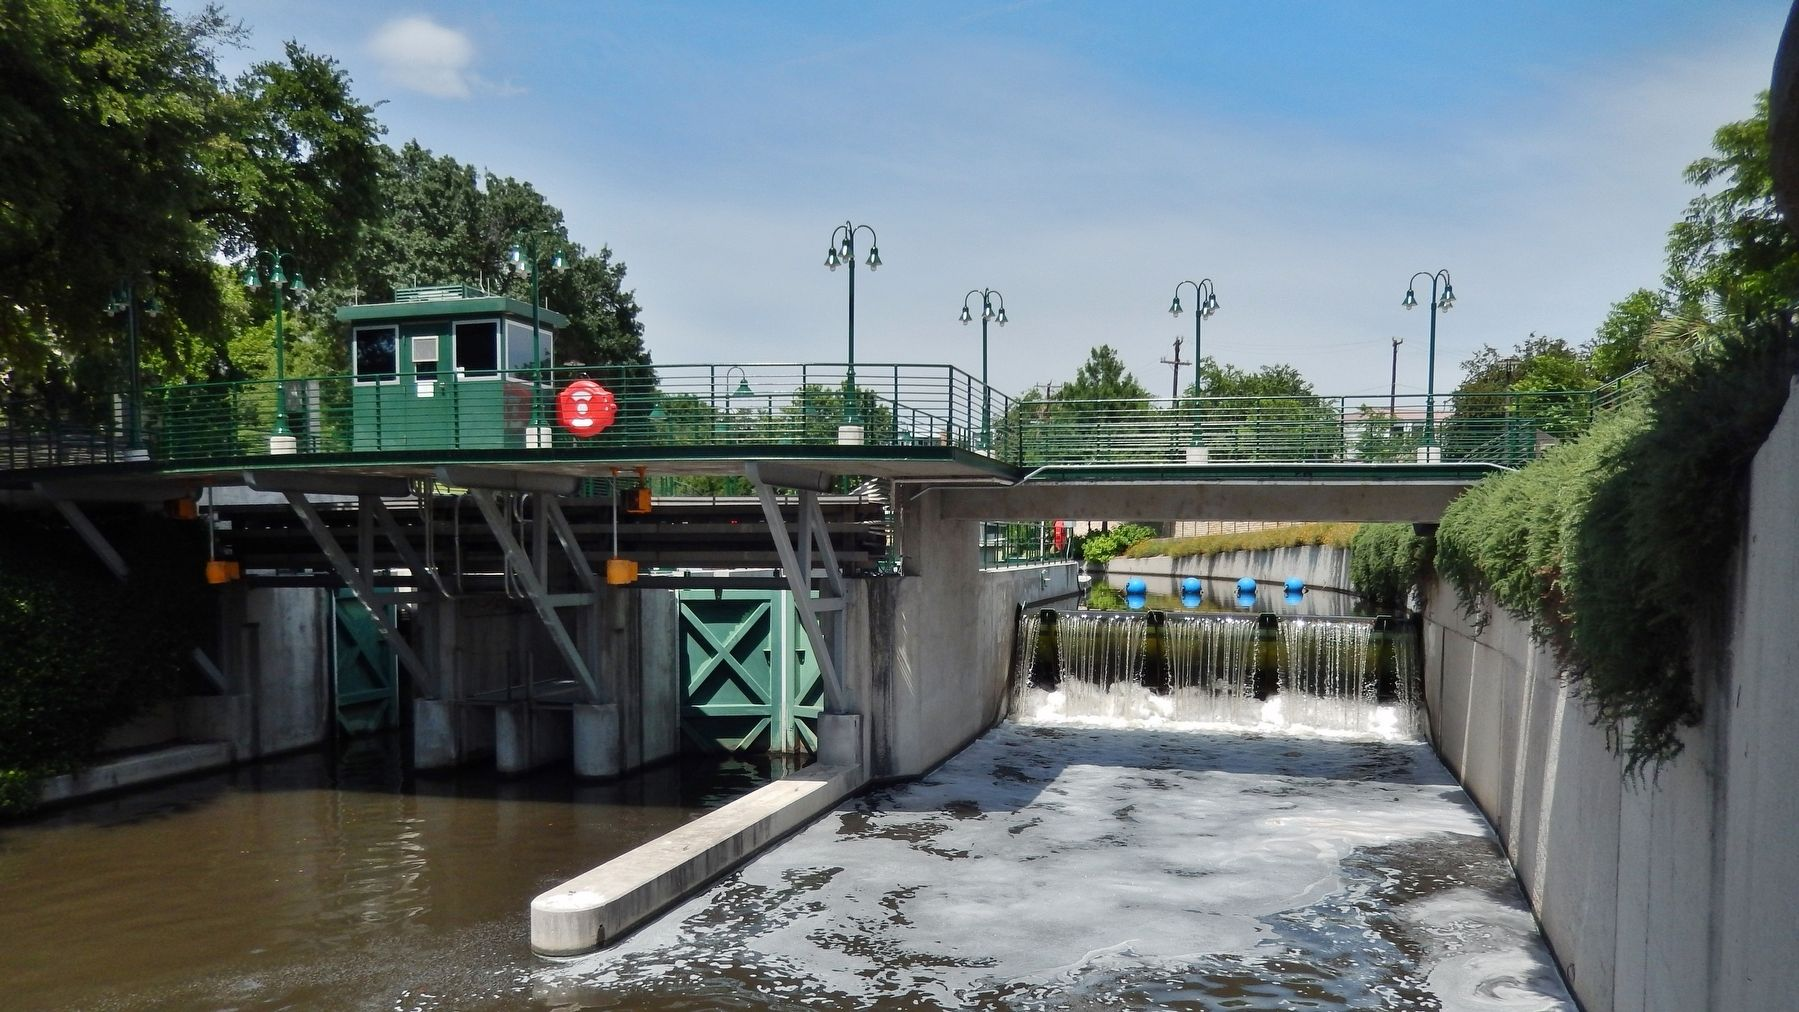 Brooklyn Avenue Locks & Dam (<i>wide view</i>) image. Click for full size.